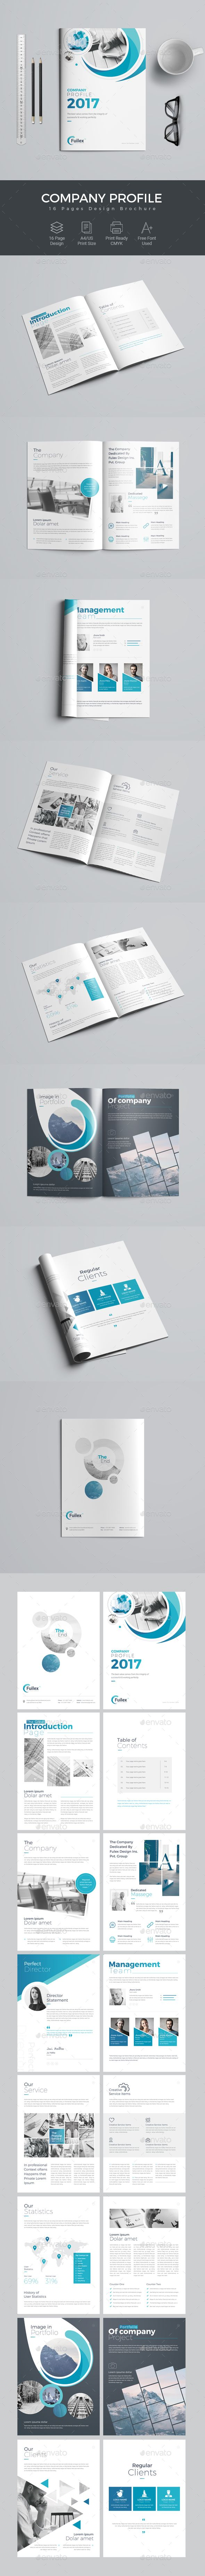 The Company Profile Brochure Template PSD